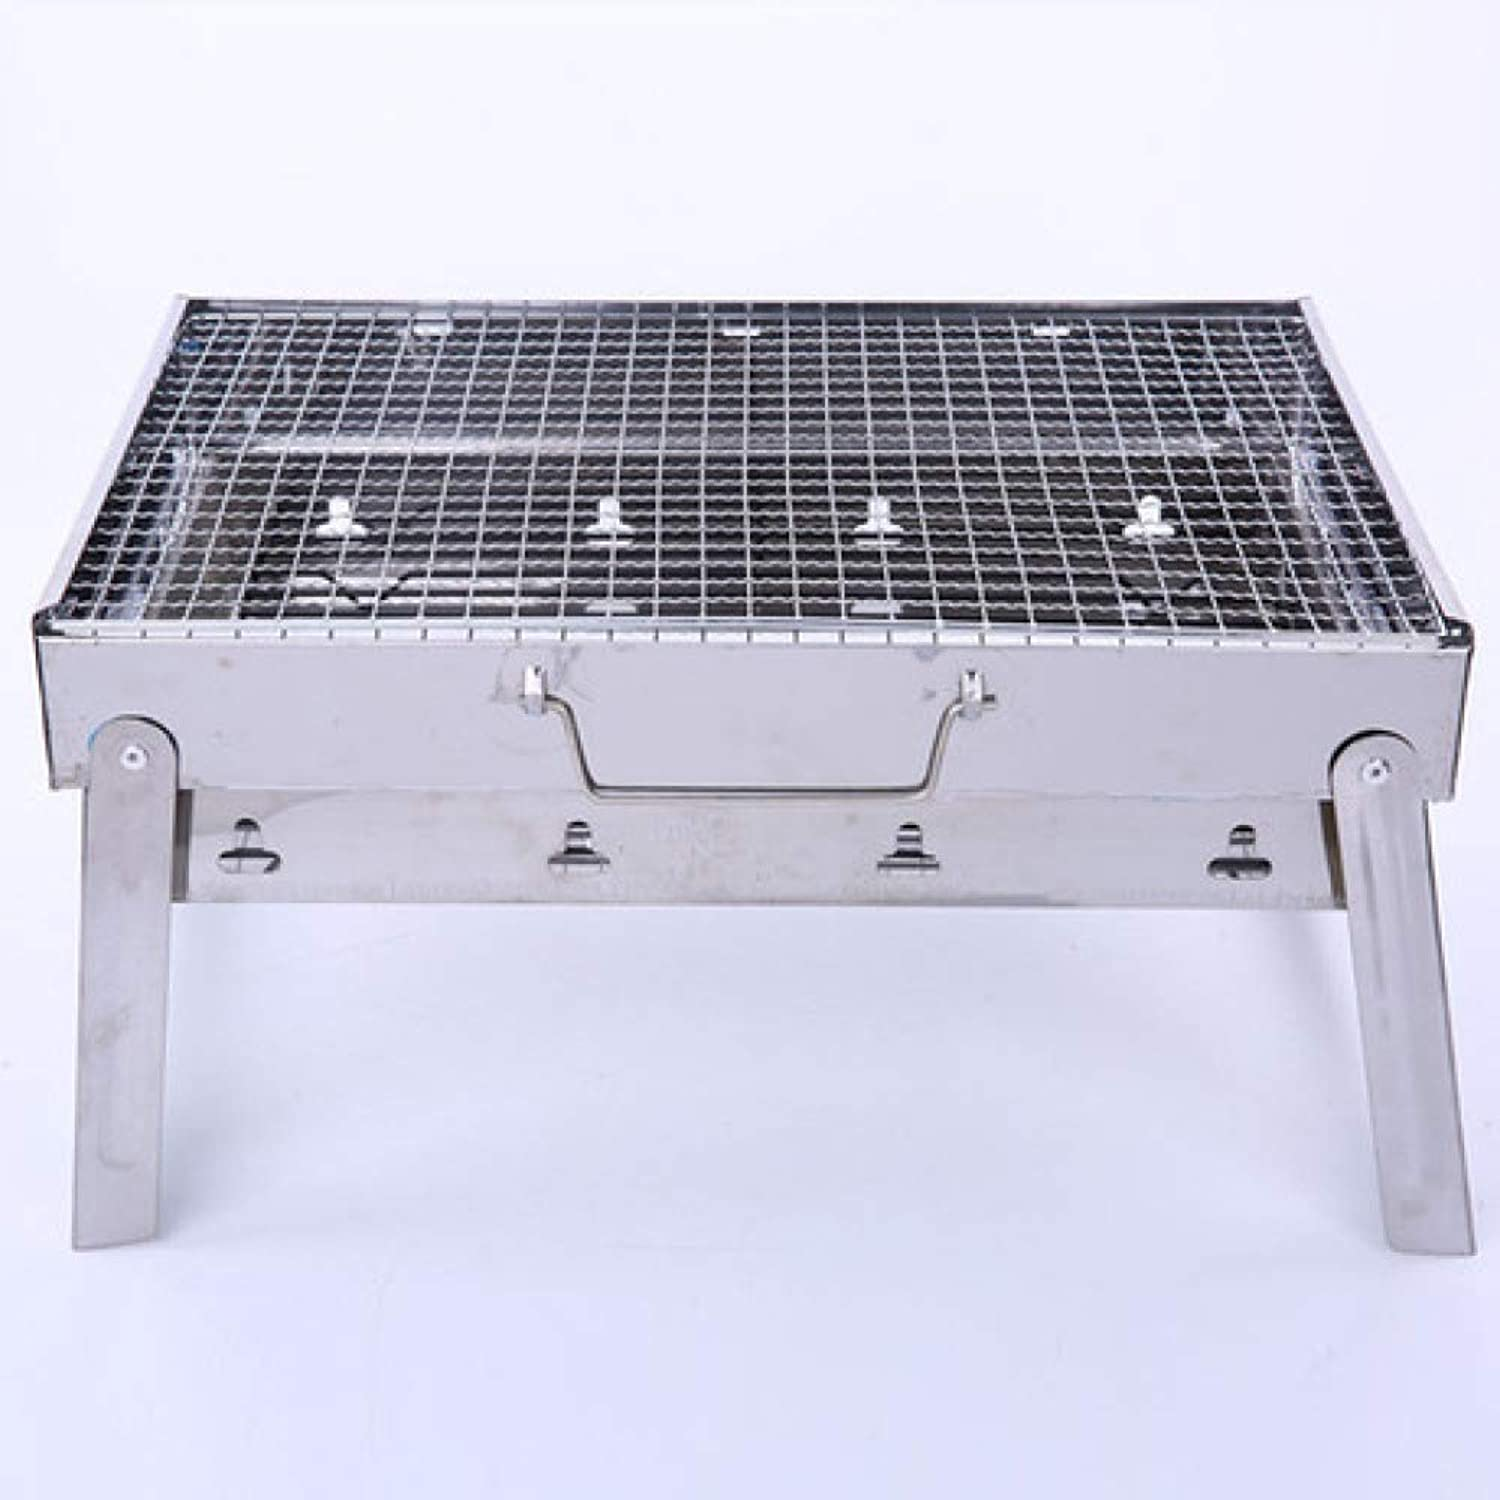 BBQ Supplies Barbecue Easy Barbecues Set Barbecue Oven Portable Stainless Steel Charcoal Grill Grill Outdoor Household Dual-use Steel BBQ Furnace